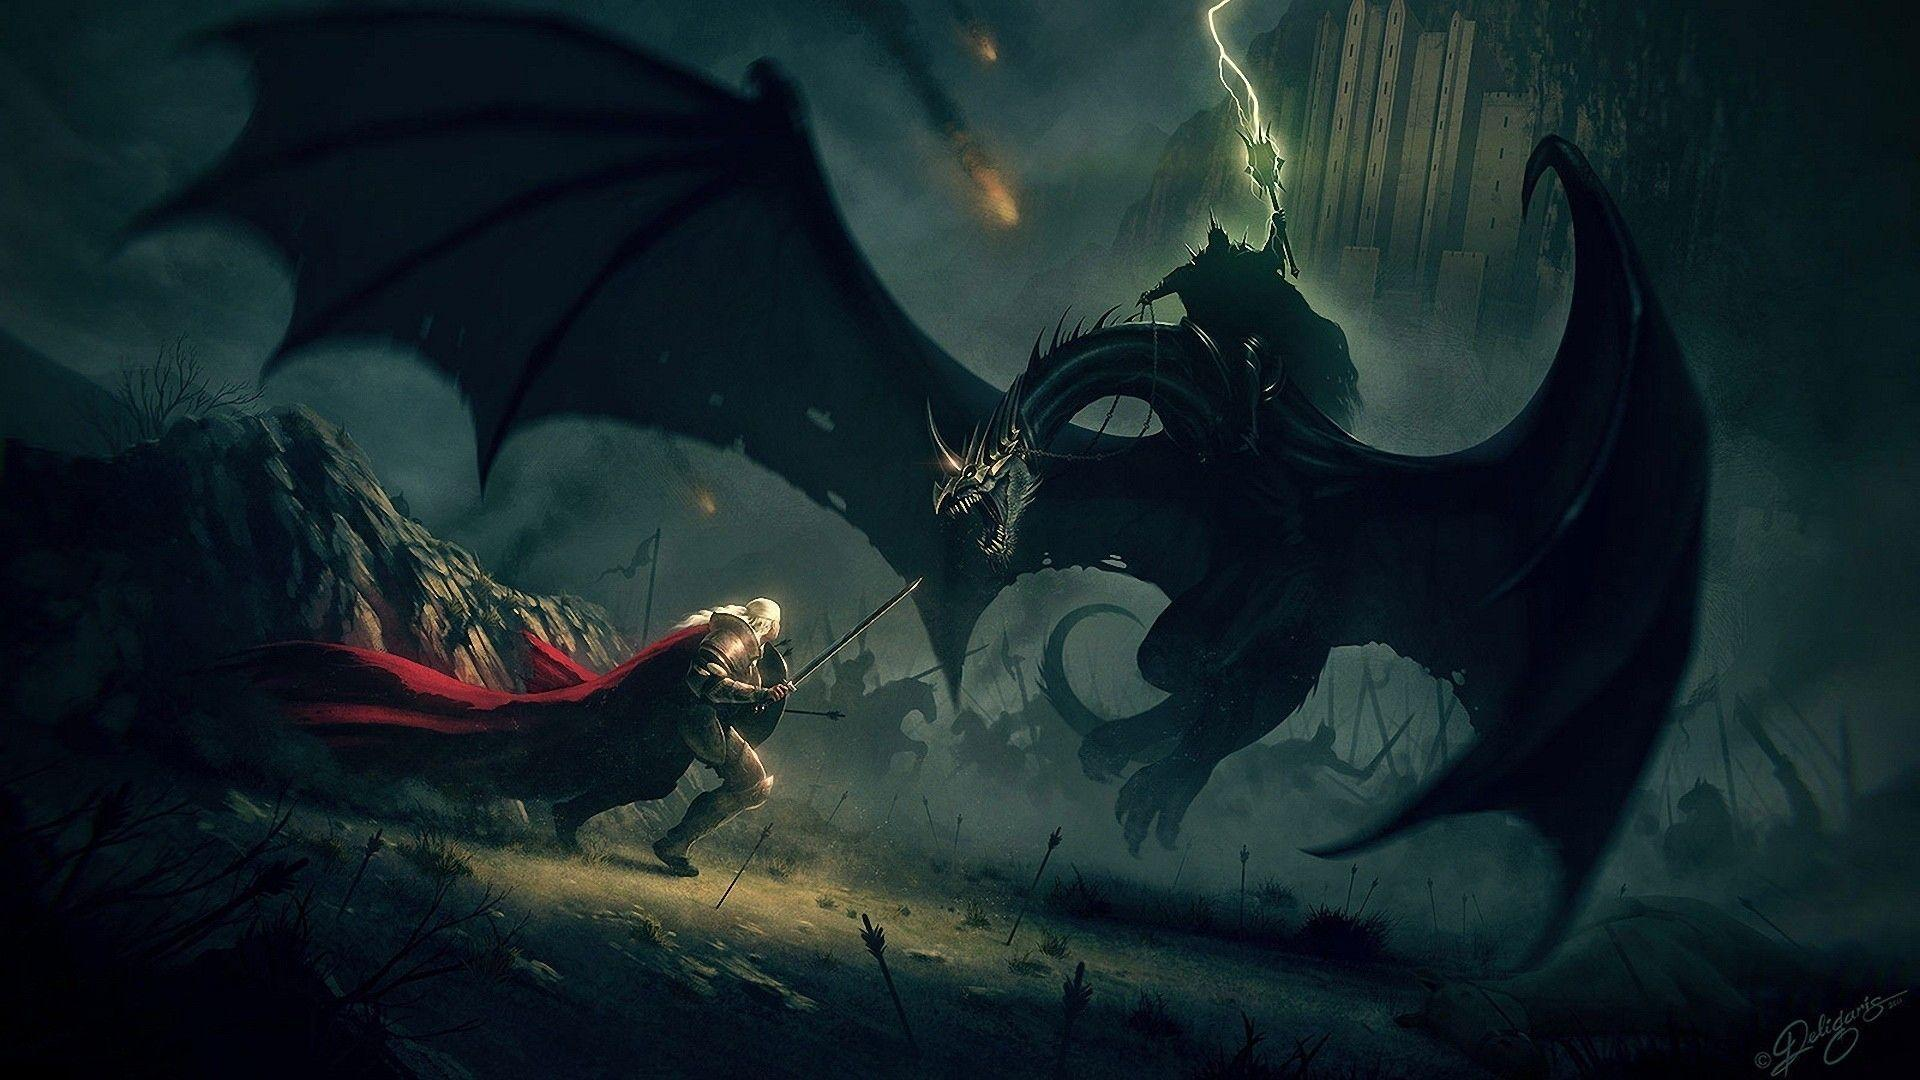 Desktop Wallpapers Epic Dragon 1280 X 960 166 Kb Jpeg